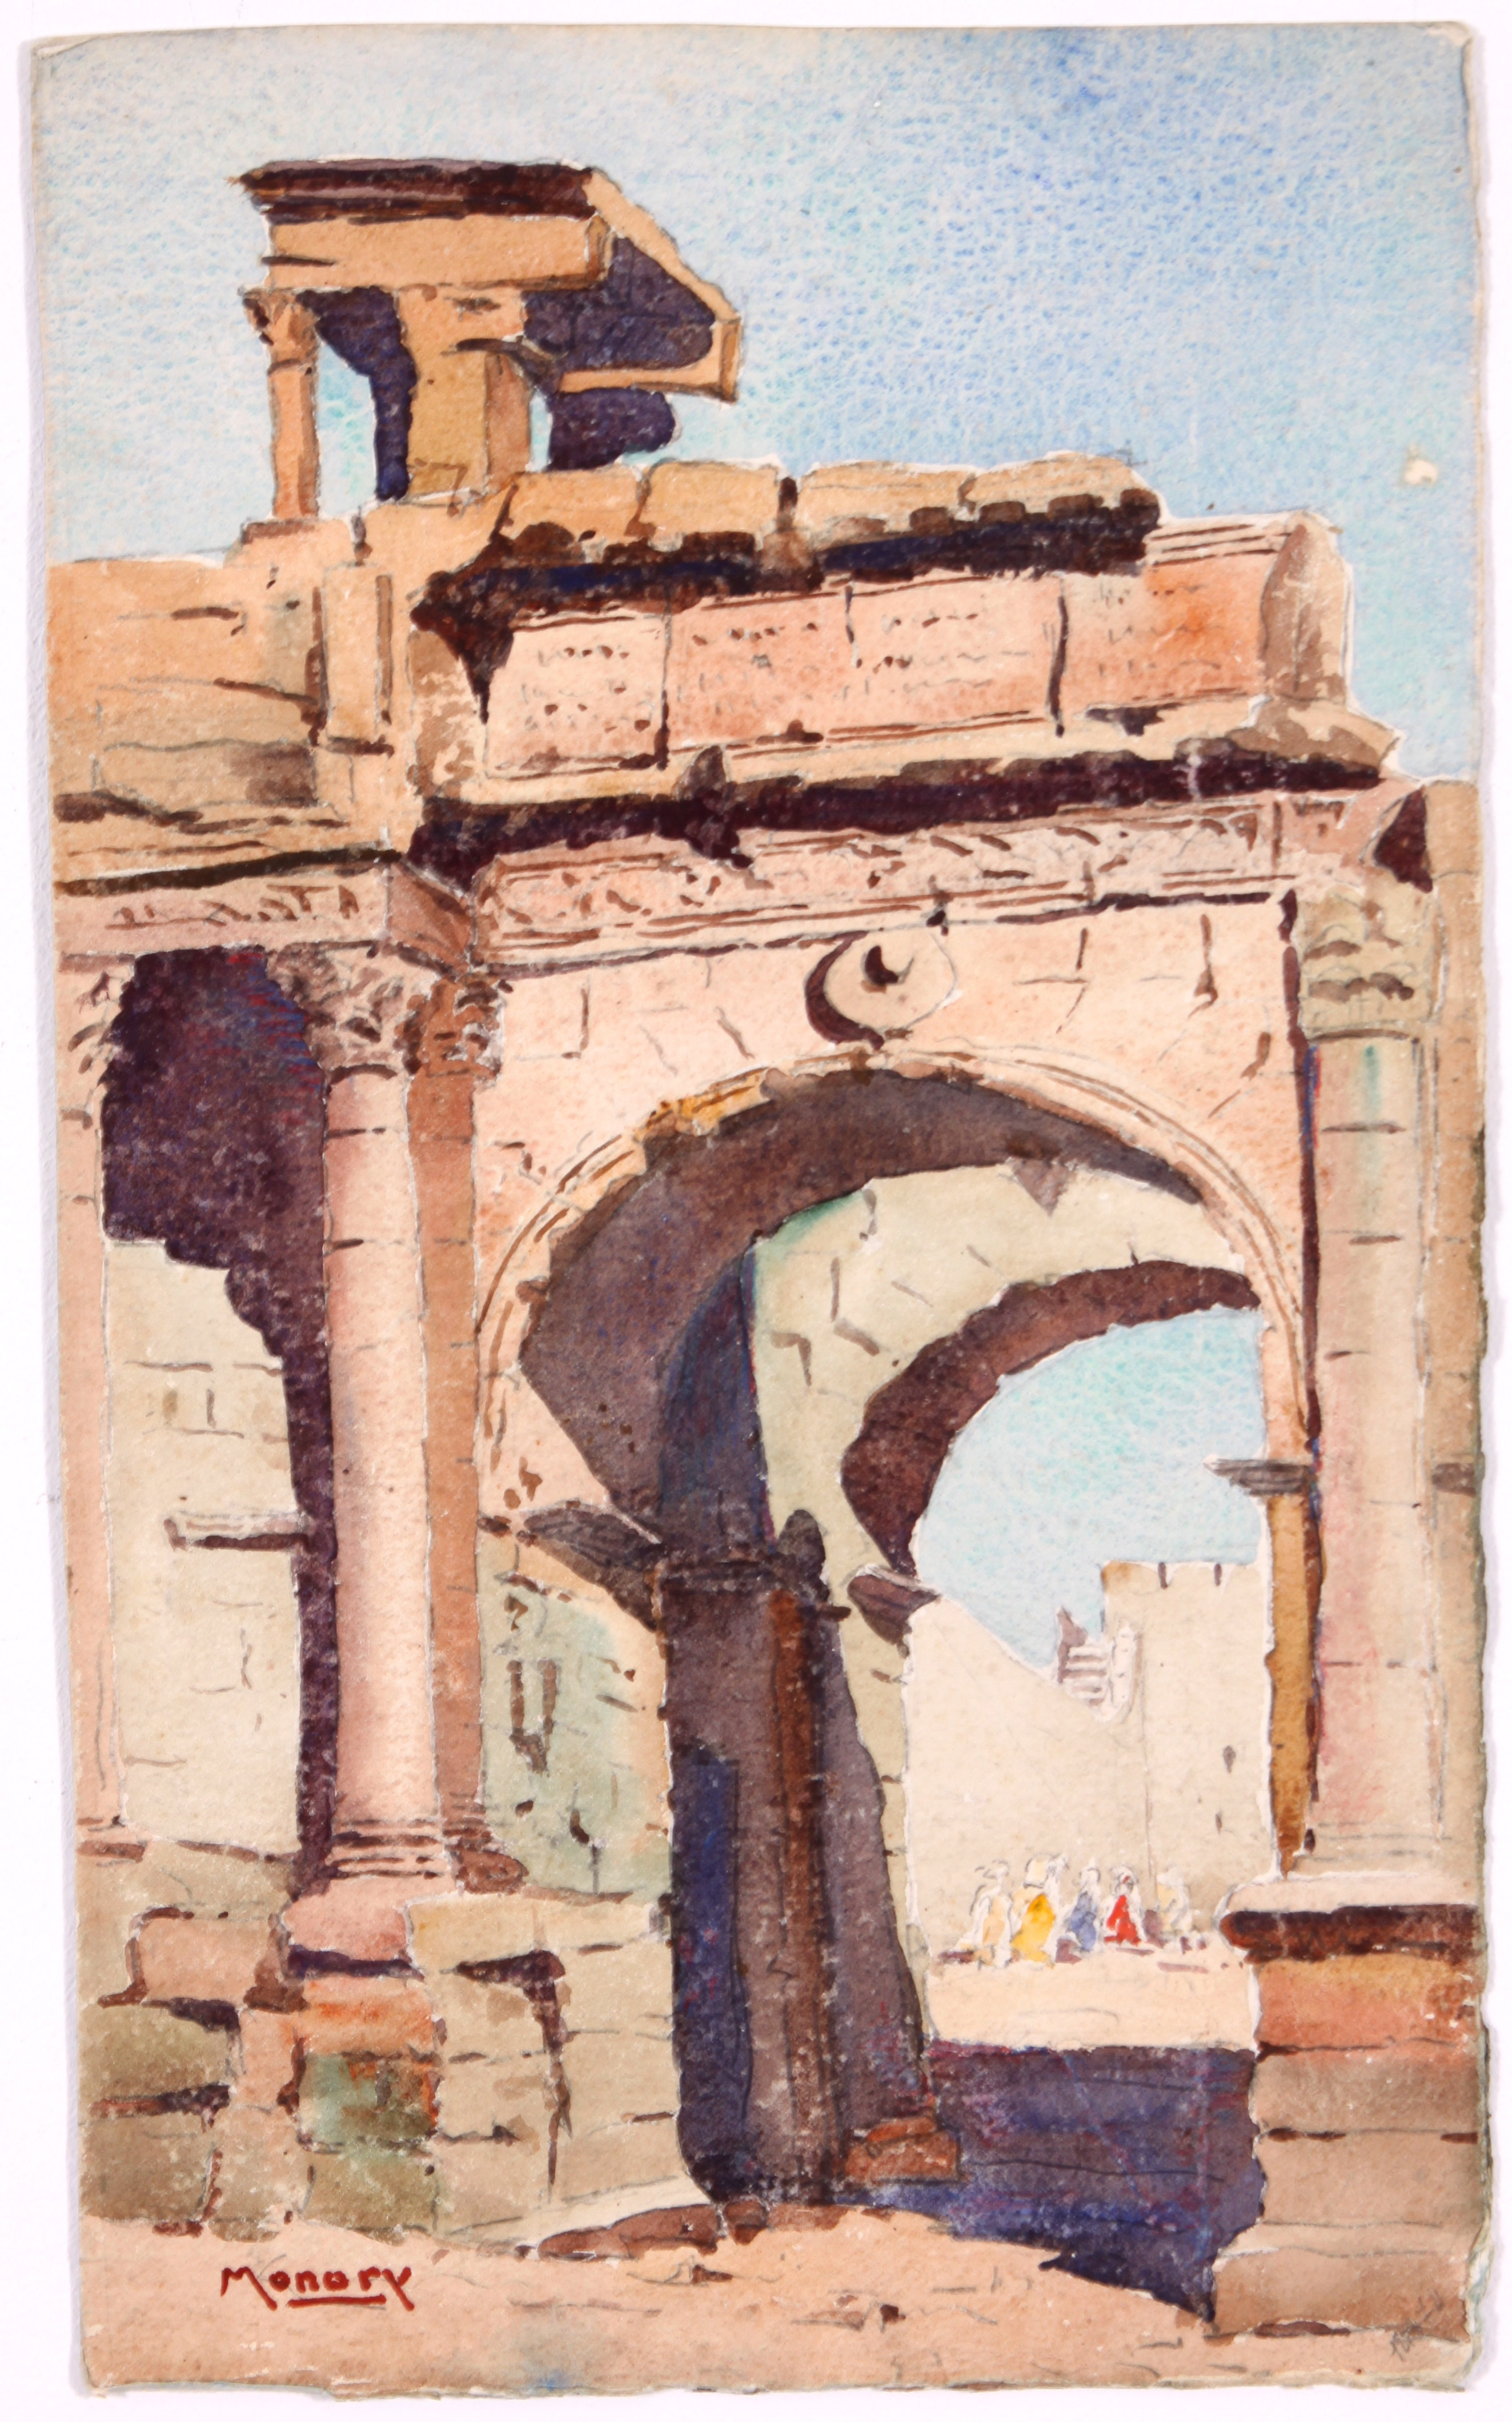 Original French Watercolor by Raoul Monory